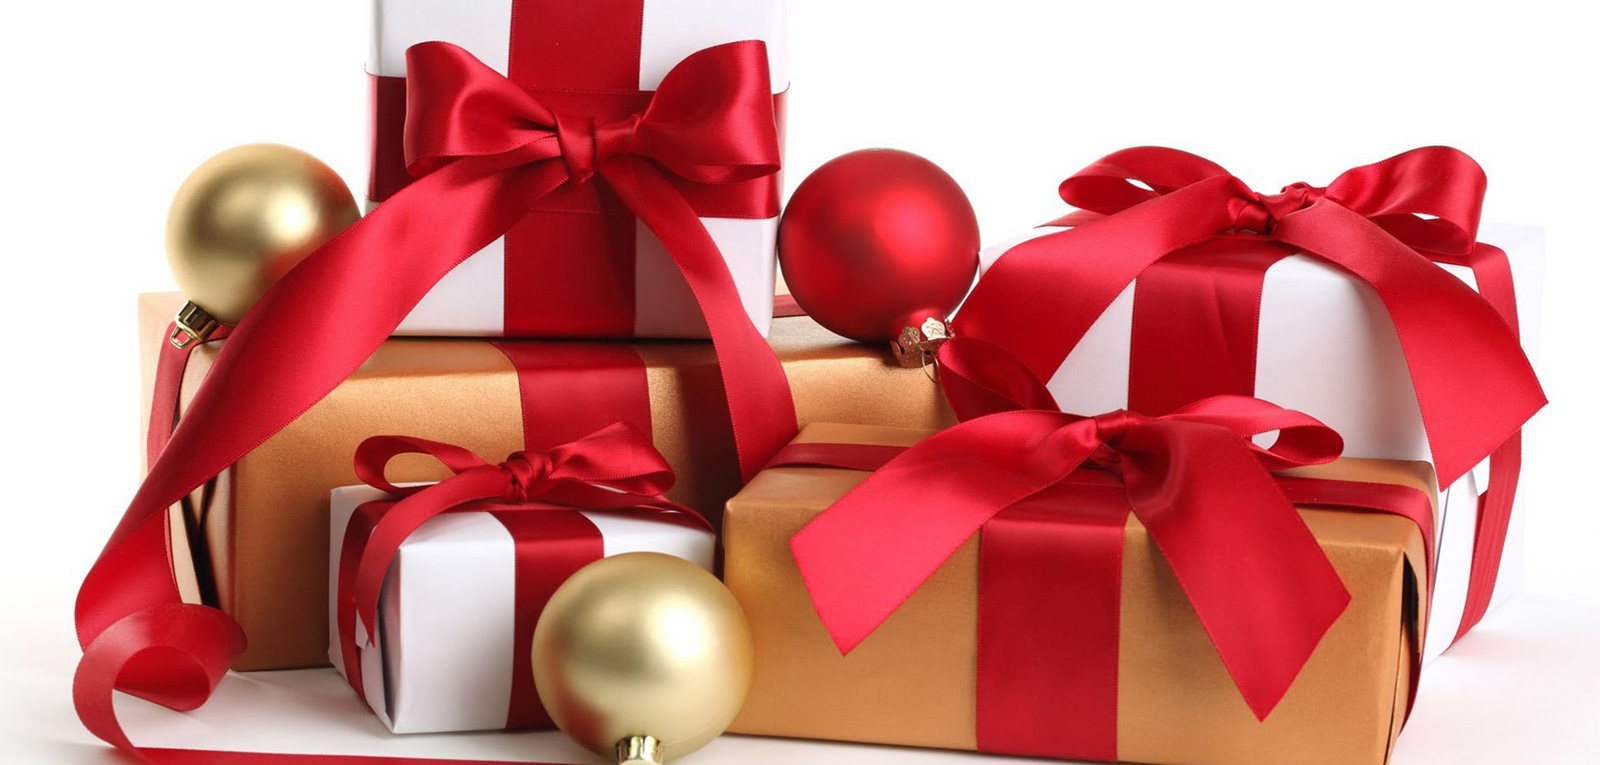 Christmas Gift Giving Images.Why Gift Giving Is Inefficient But You Should Do It Anyway